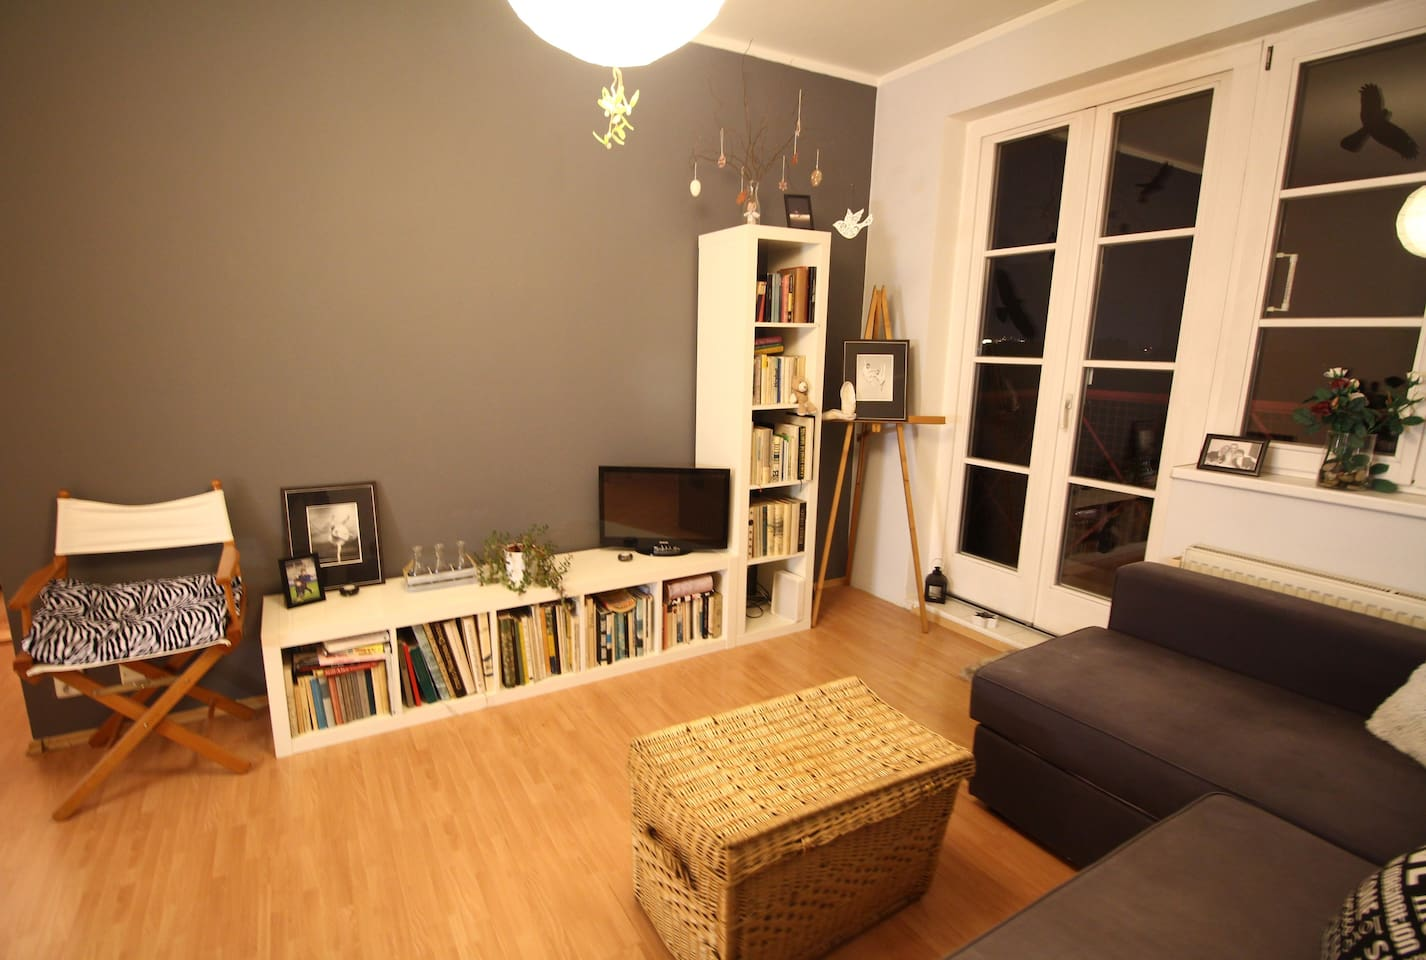 Living room with small TV and balcony entrance